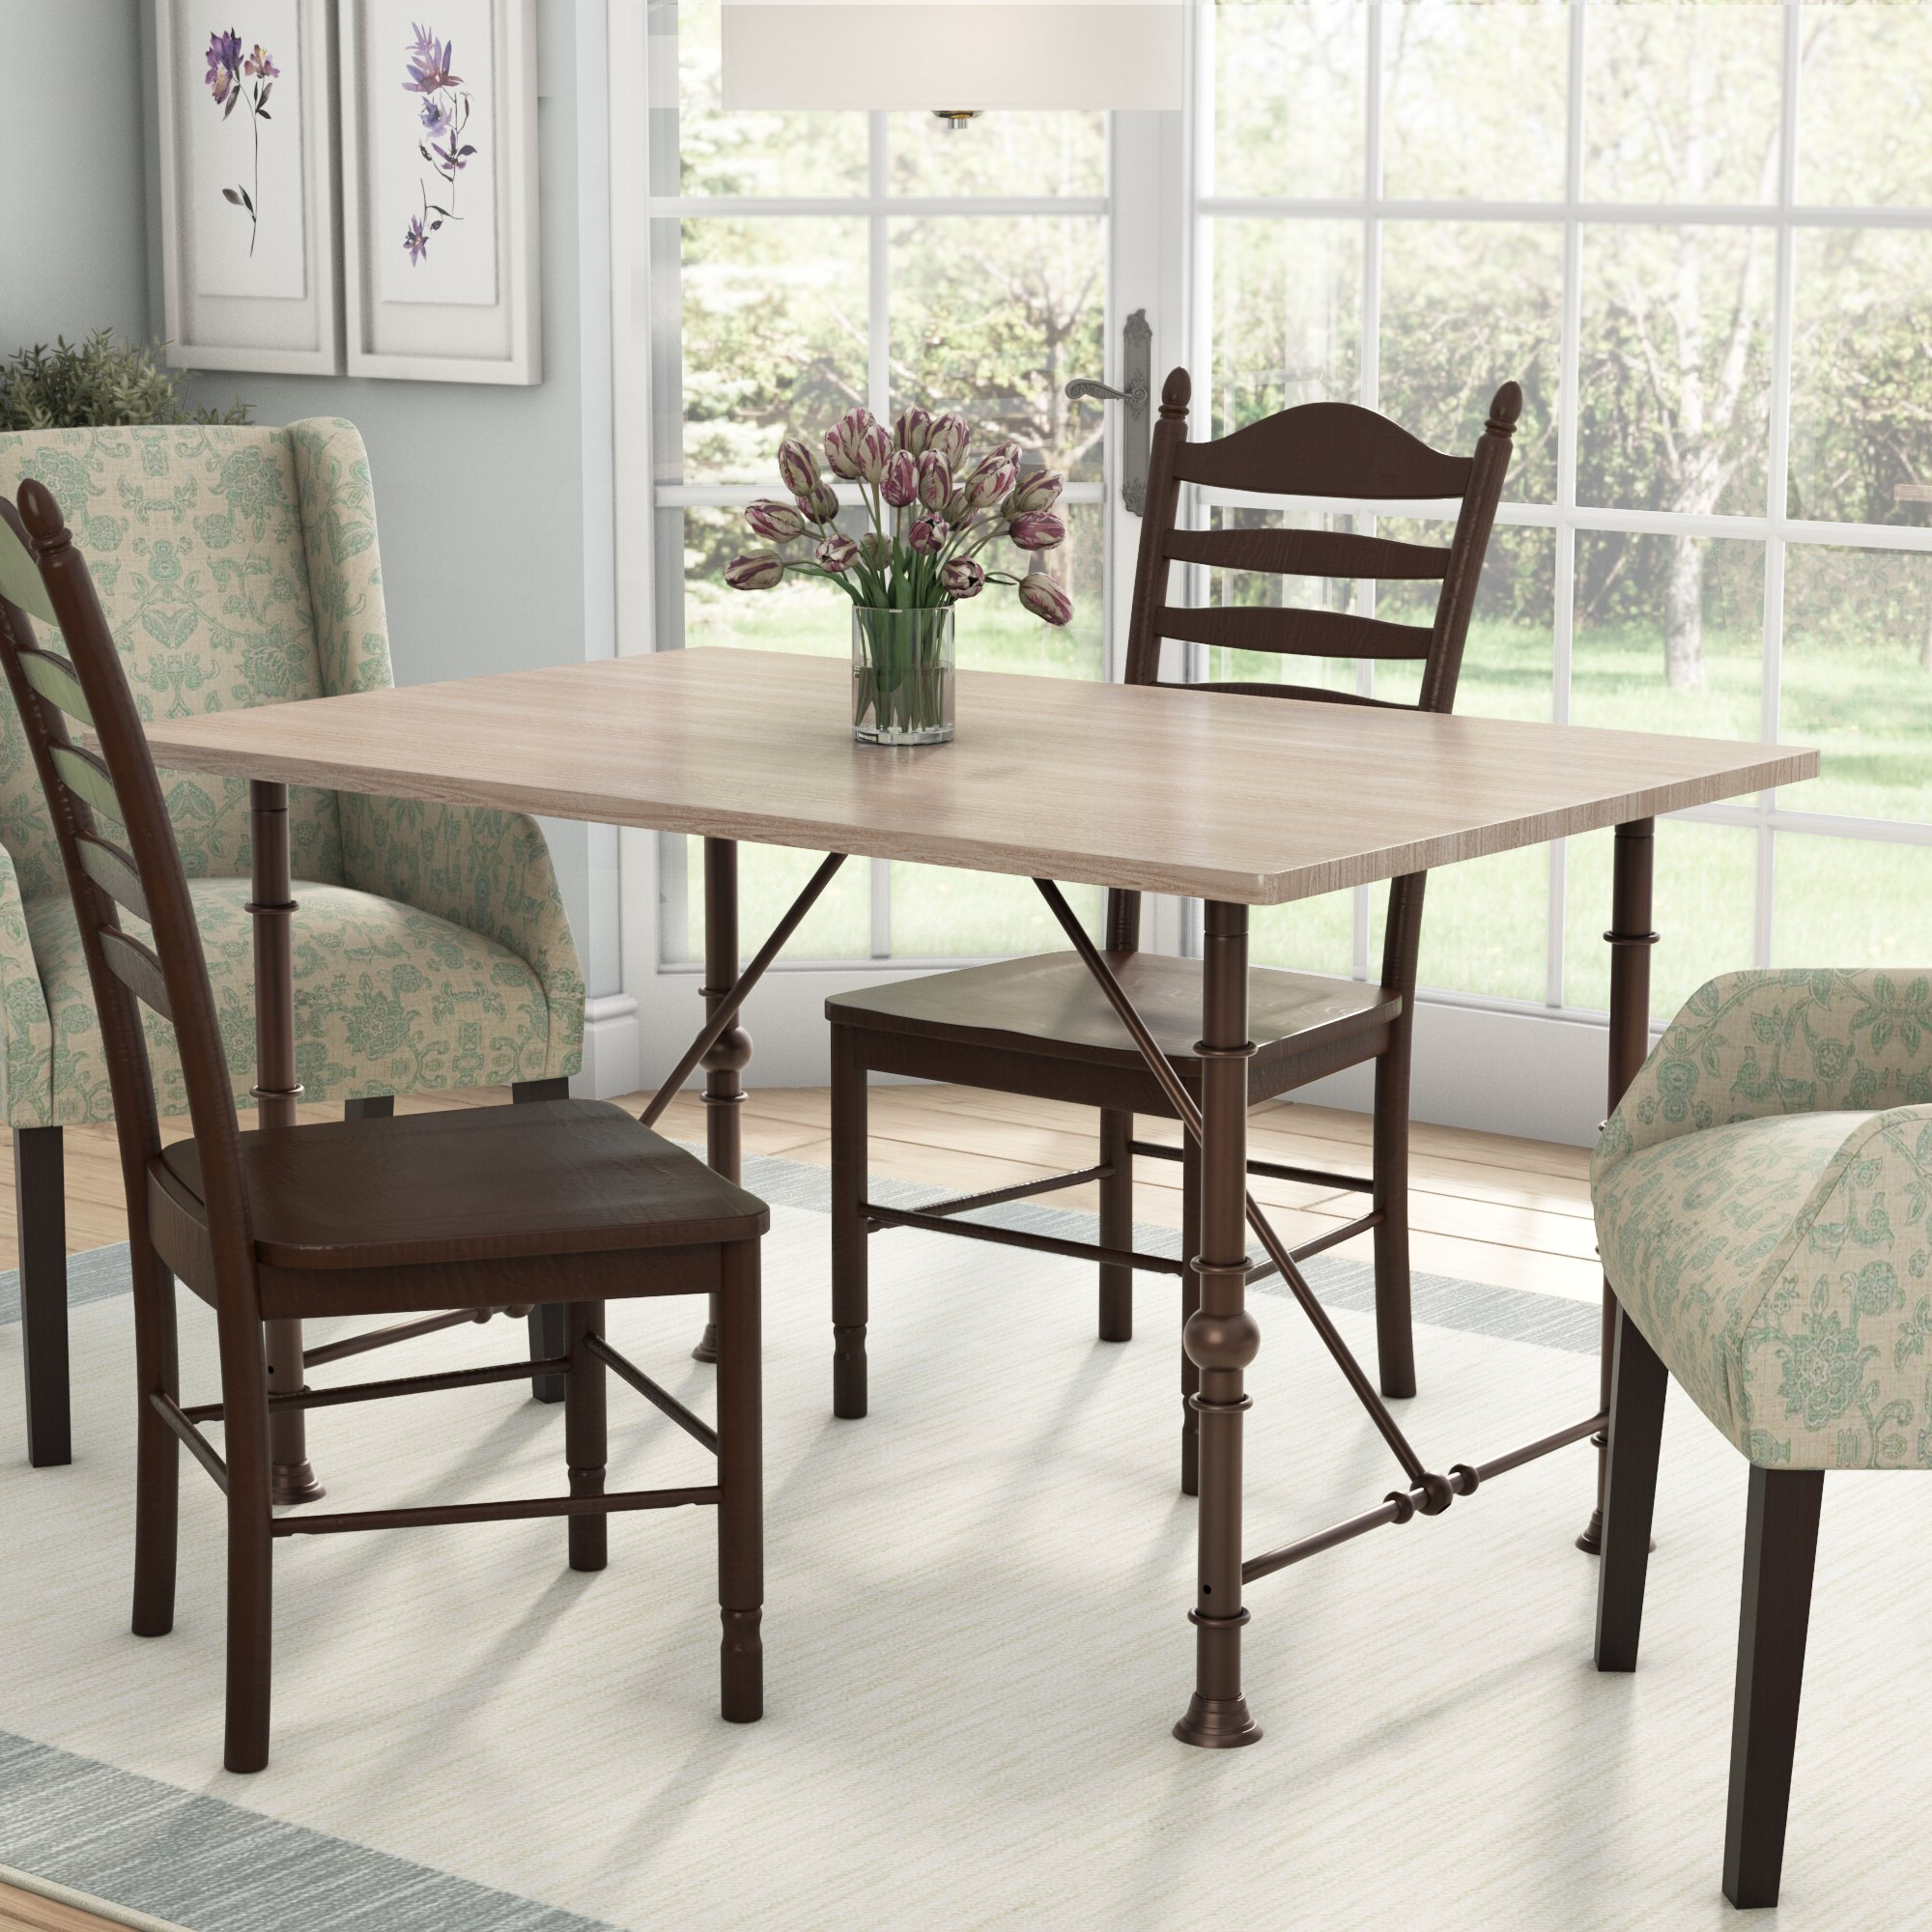 2020 Avery Rectangular Dining Tables with Avery Dining Table